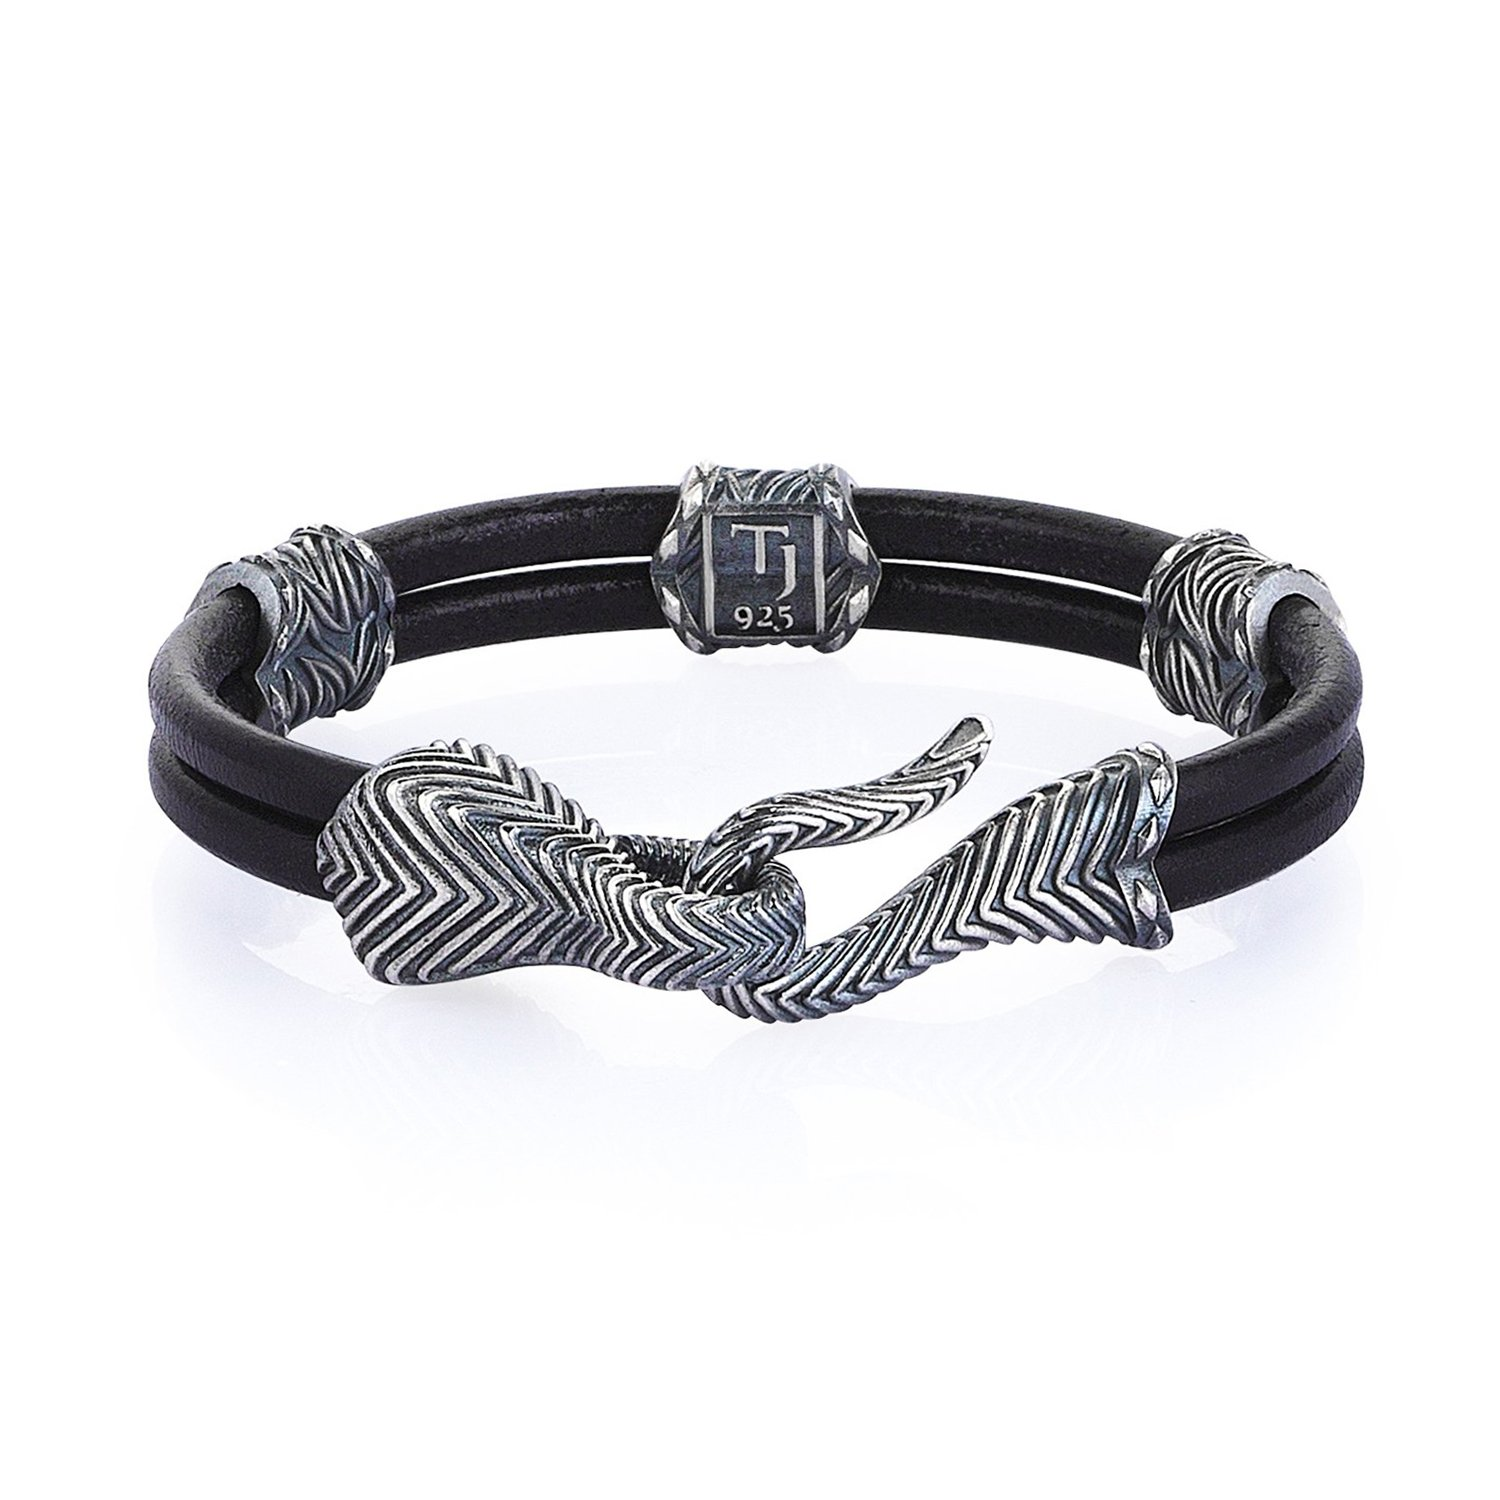 Oxidised Silver Serpi Bracelet in Natural Black Leather